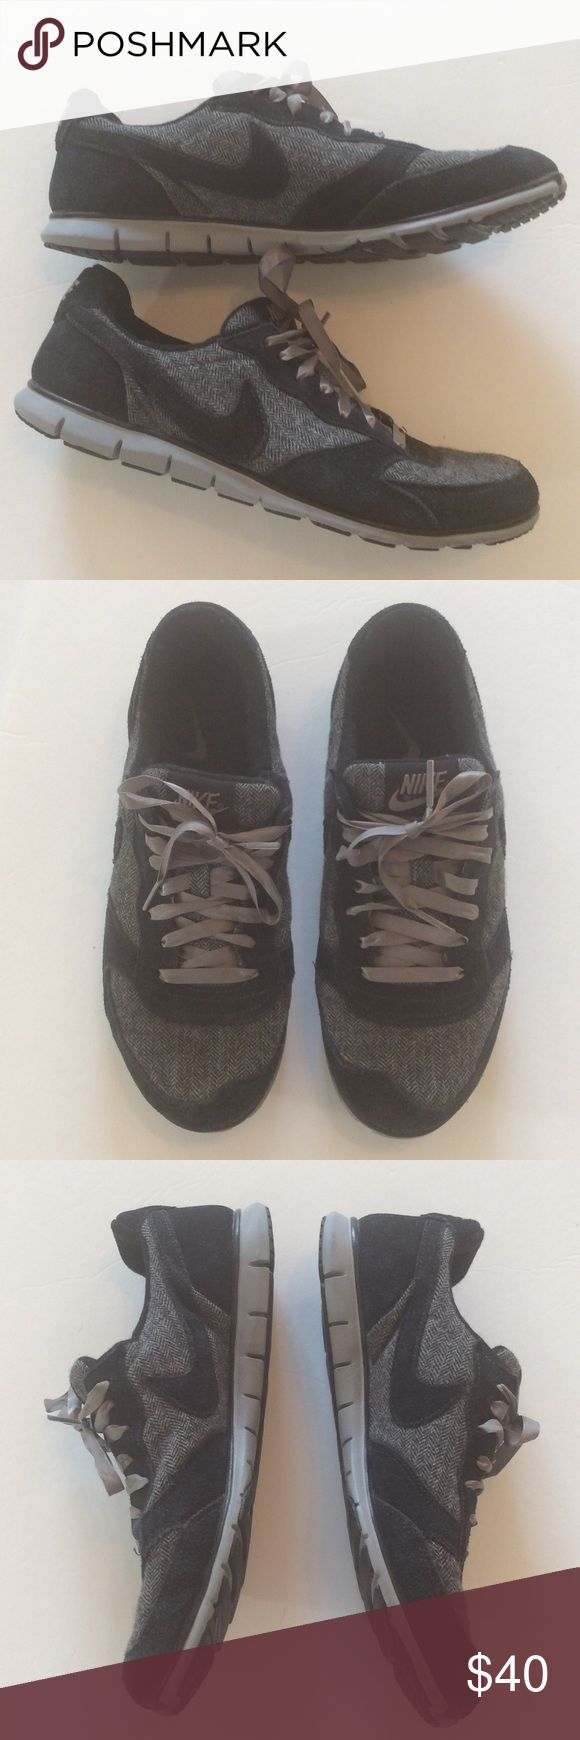 Nike Eclipse   Size 8 Very unique Nike sneakers. Have a tweed appearance. Great score at this price. Nike Shoes Sneakers